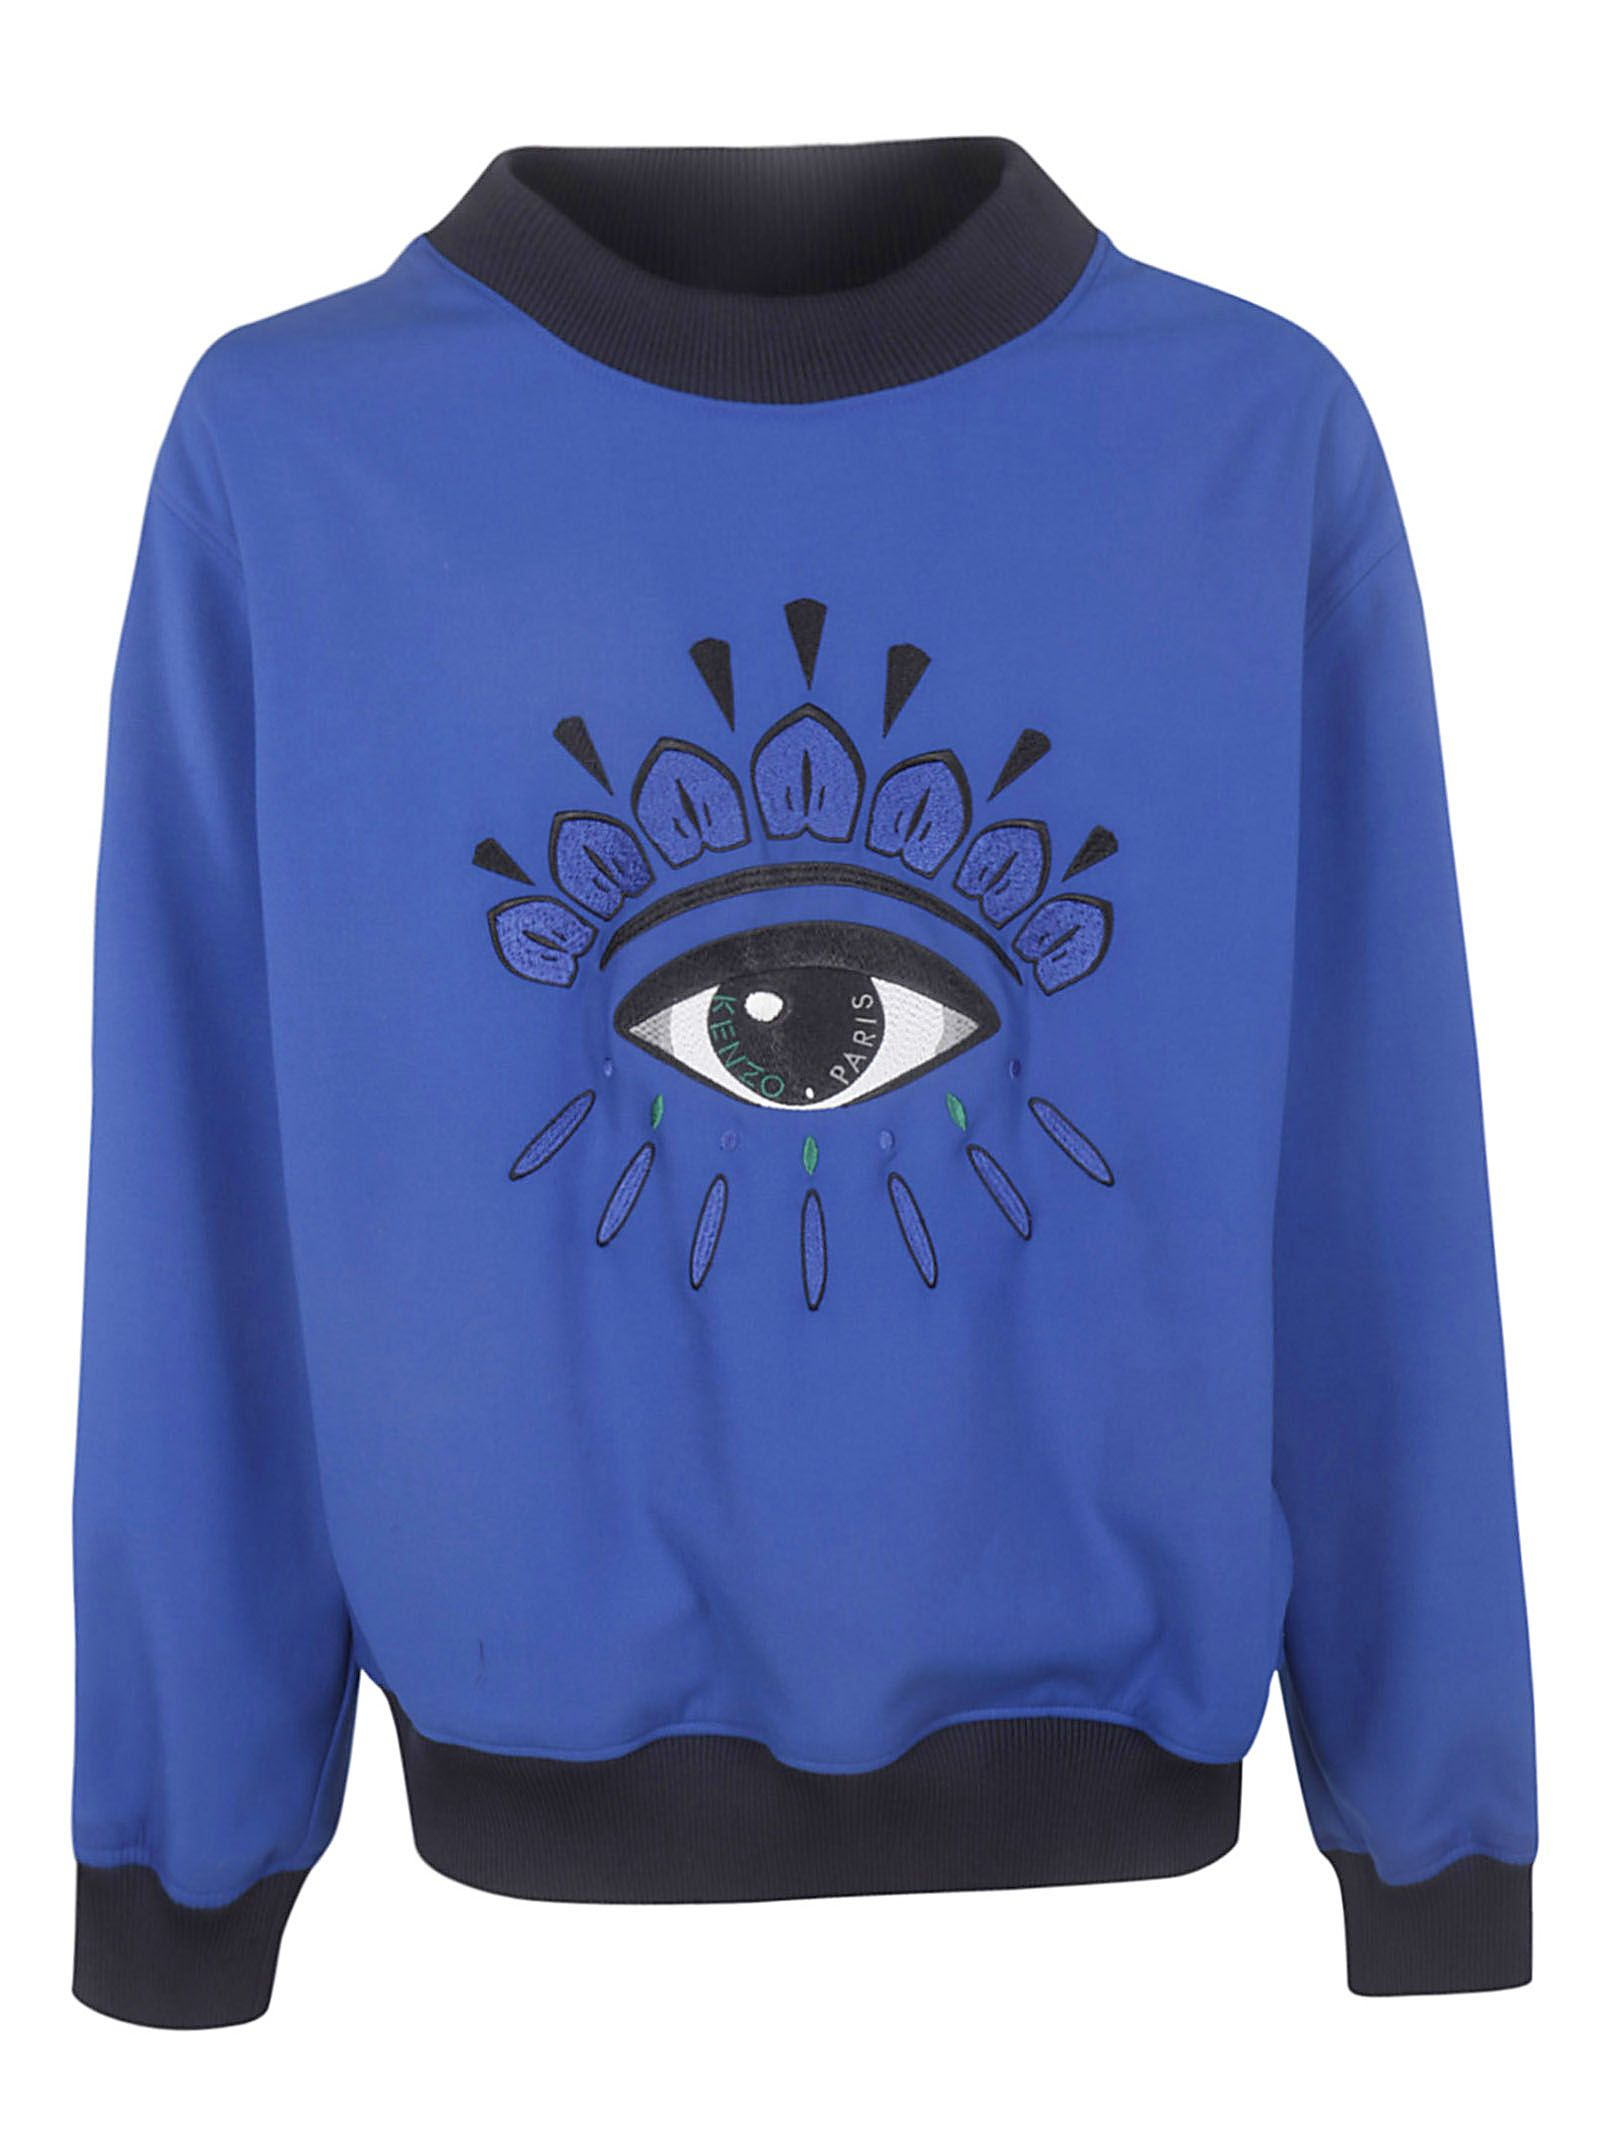 9d7c7e7d0 Kenzo Kenzo Embroidered Eye Sweatshirt - Blue france - 10823496 ...